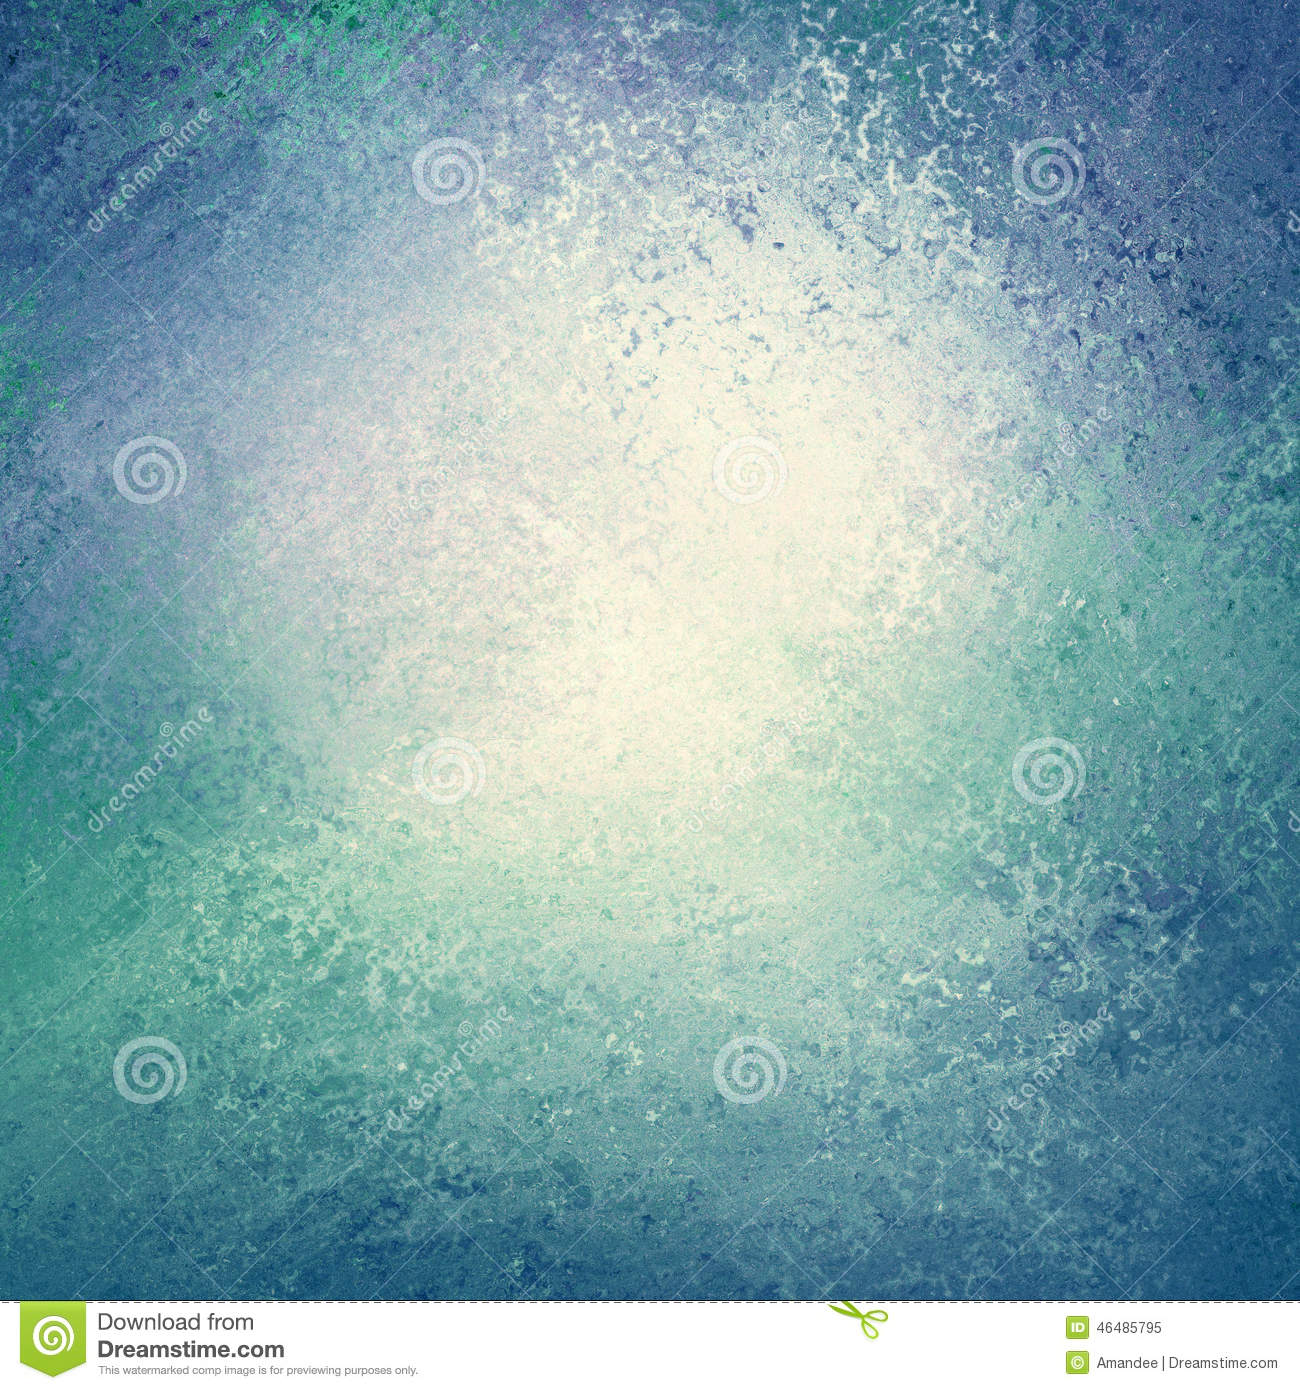 Blue Green And Grey Living Room: Blue And Green Background With White Center And Sponged